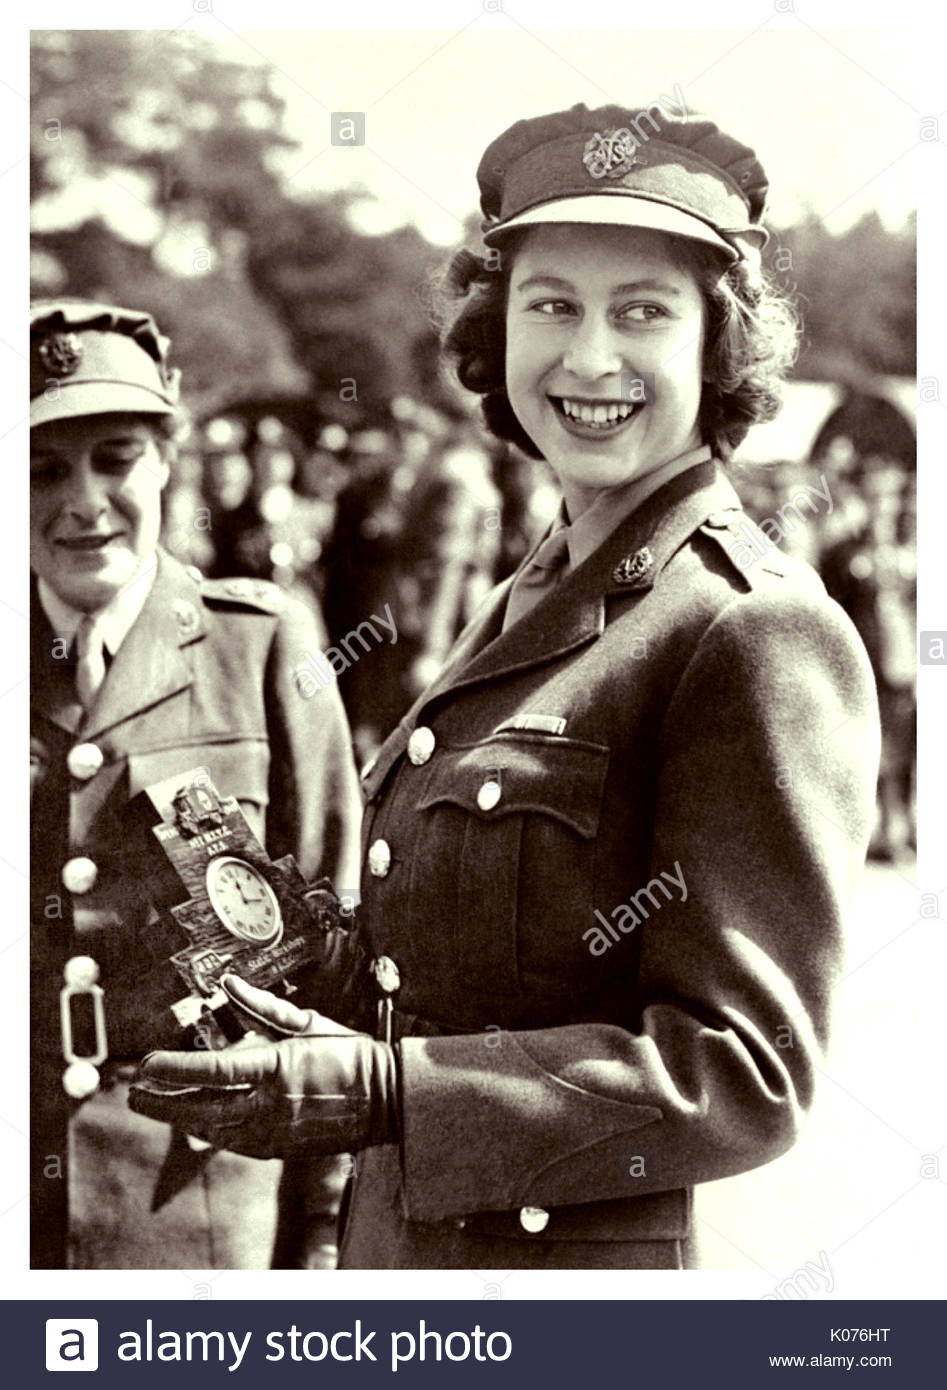 During World War II, the then Princess Elizabeth joined Women's Auxiliary Territorial Service, she received rank promotion to Junior Commander. Aug. 3, 1945 she was presented with a clock to mark her service to the United Kingdom - Stock Image